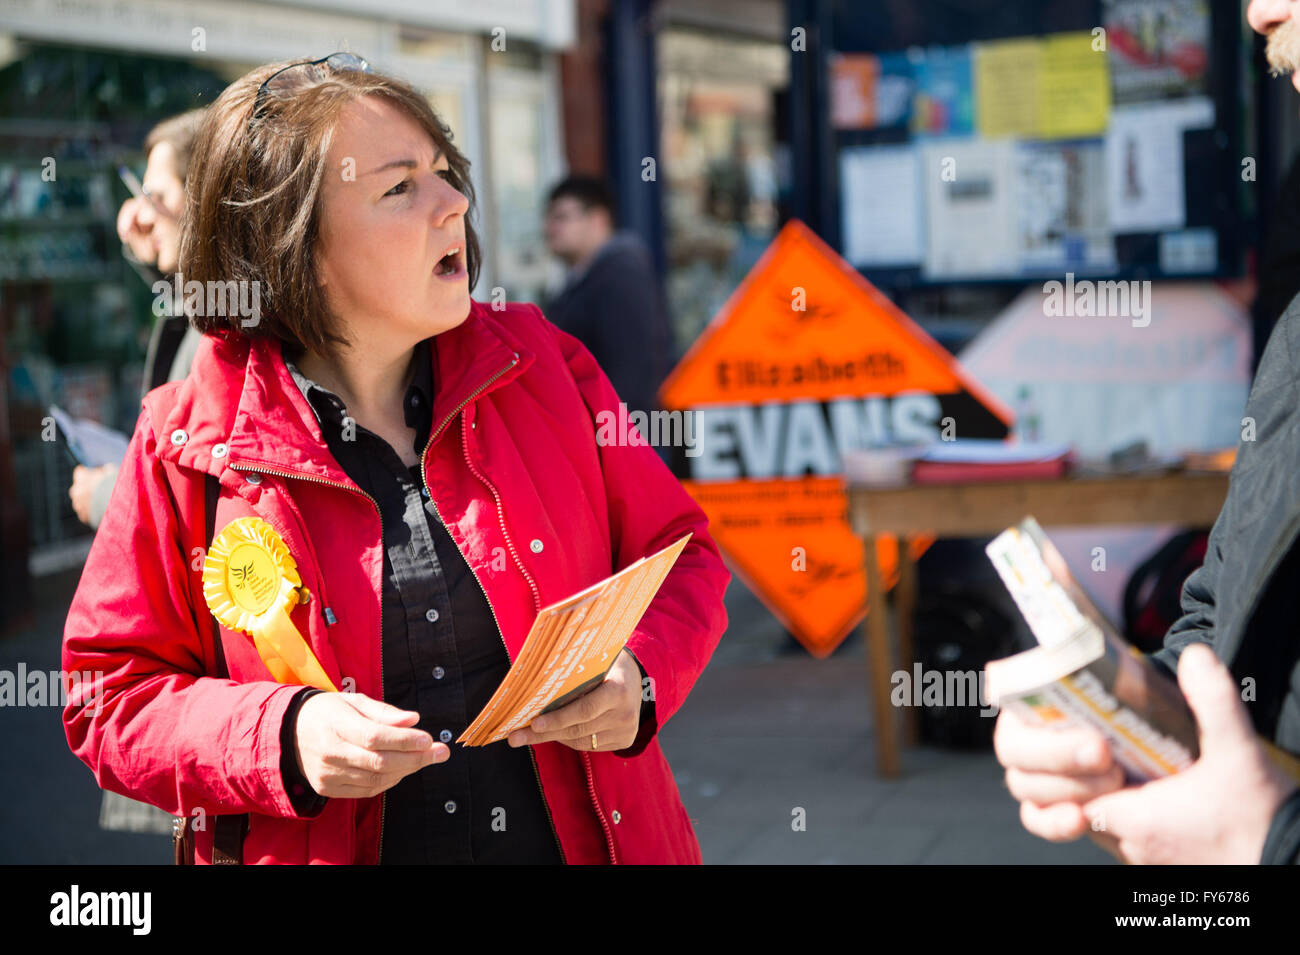 Aberystwyth Wales UK, Saturday 23 April 2016  Elizabeth Evans, the Welsh Liberal Democrat party candidate for the - Stock Image